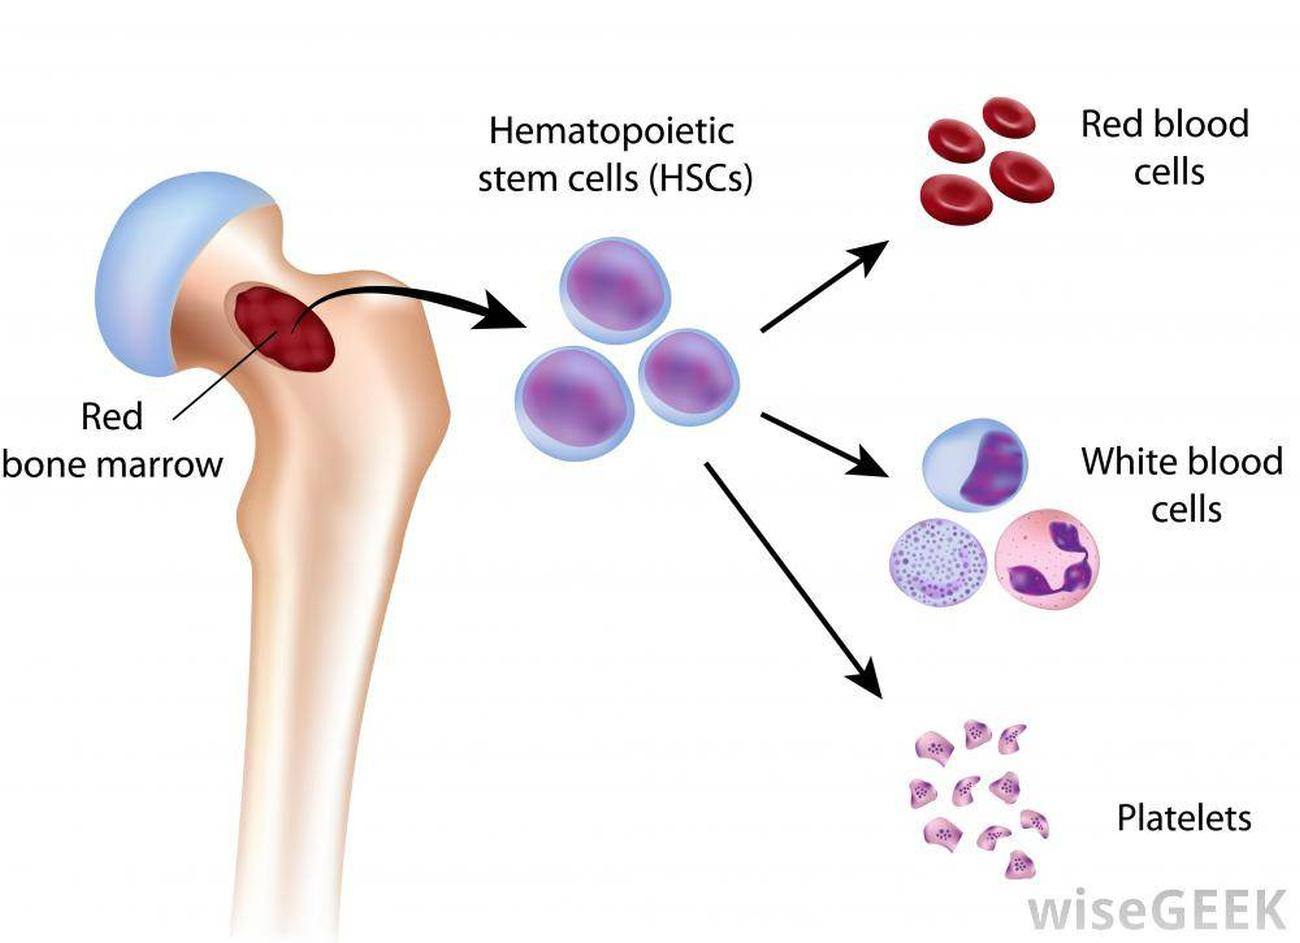 haematopoiesis located in bone marrow section biology essay At a steady state, upon leaving the bone marrow, basophils reside mainly in the peripheral blood but can migrate into tissues such as lymph nodes, skin and the lungs where they can play roles in regulating immune responses or in the pathogenesis of diseases.